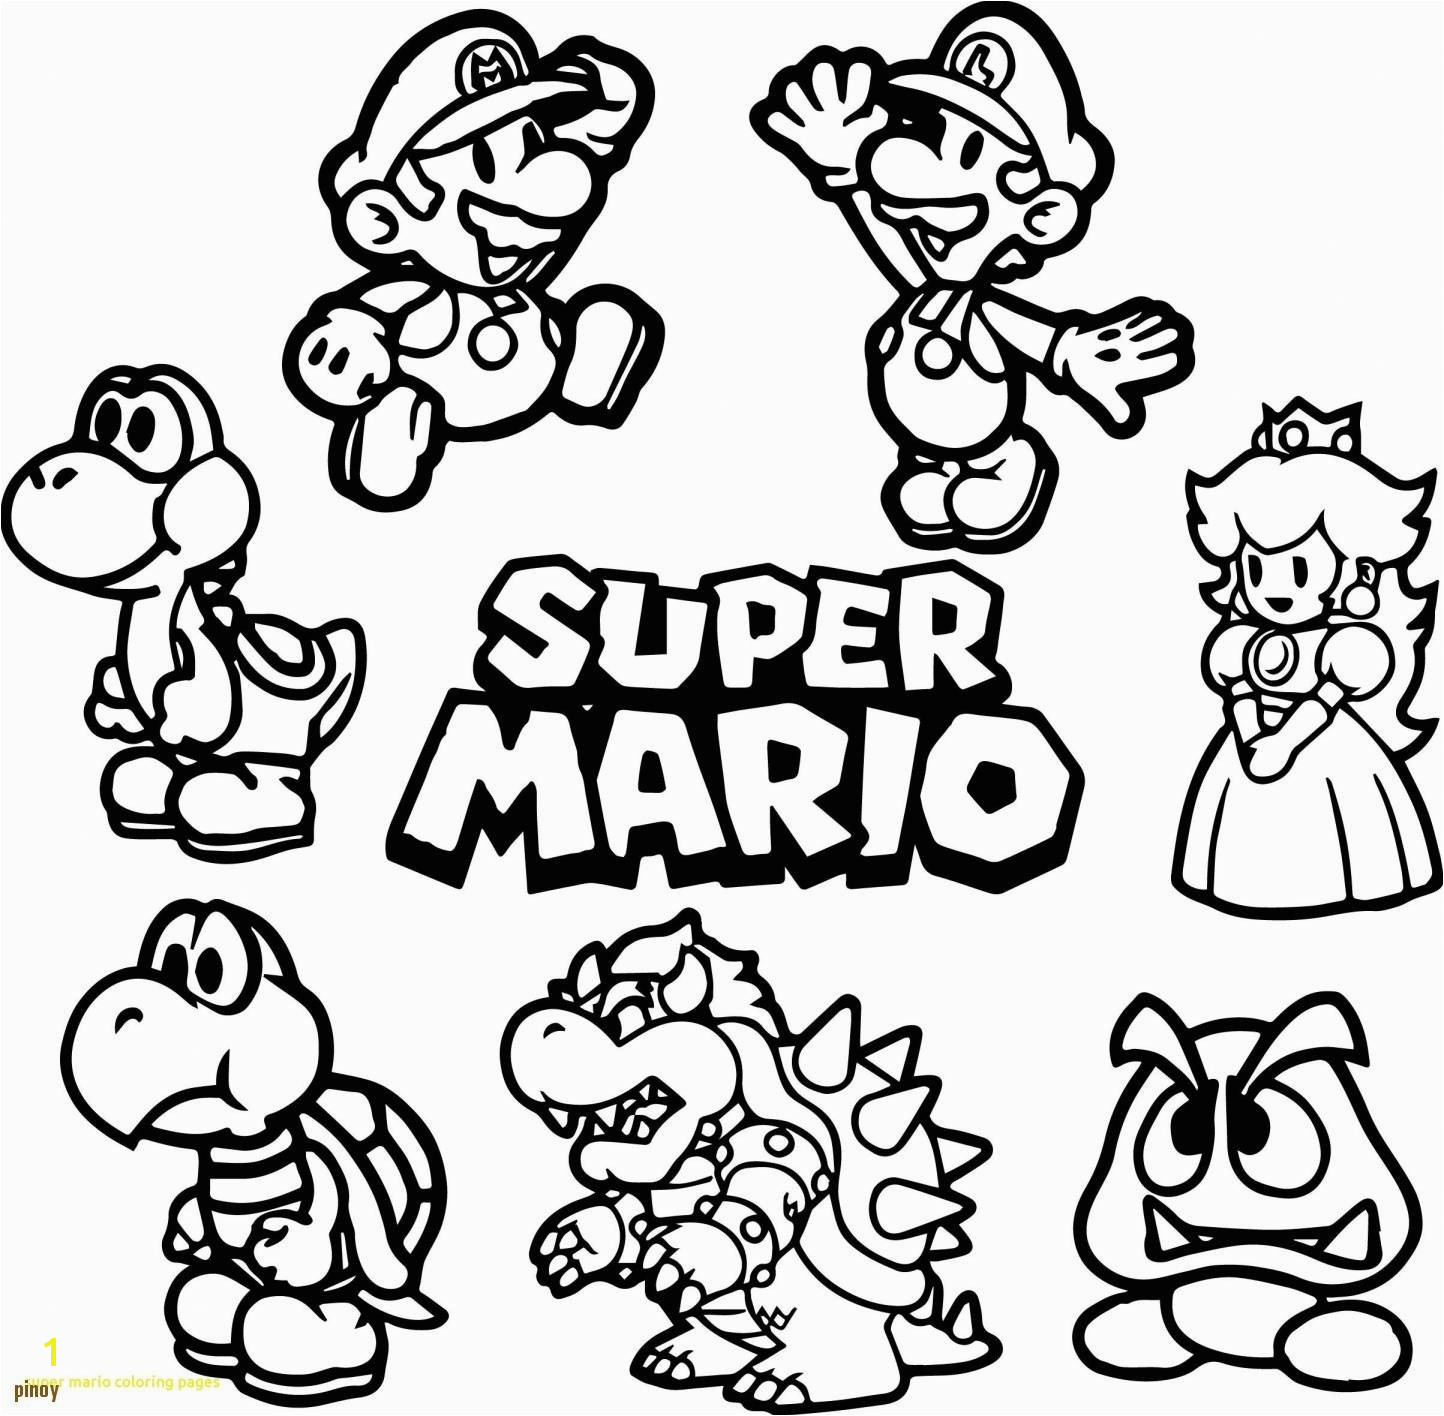 Daisy From Mario Coloring Pages Awesome Daisy From Mario Coloring Pages Coloring Pages Coloring Pages